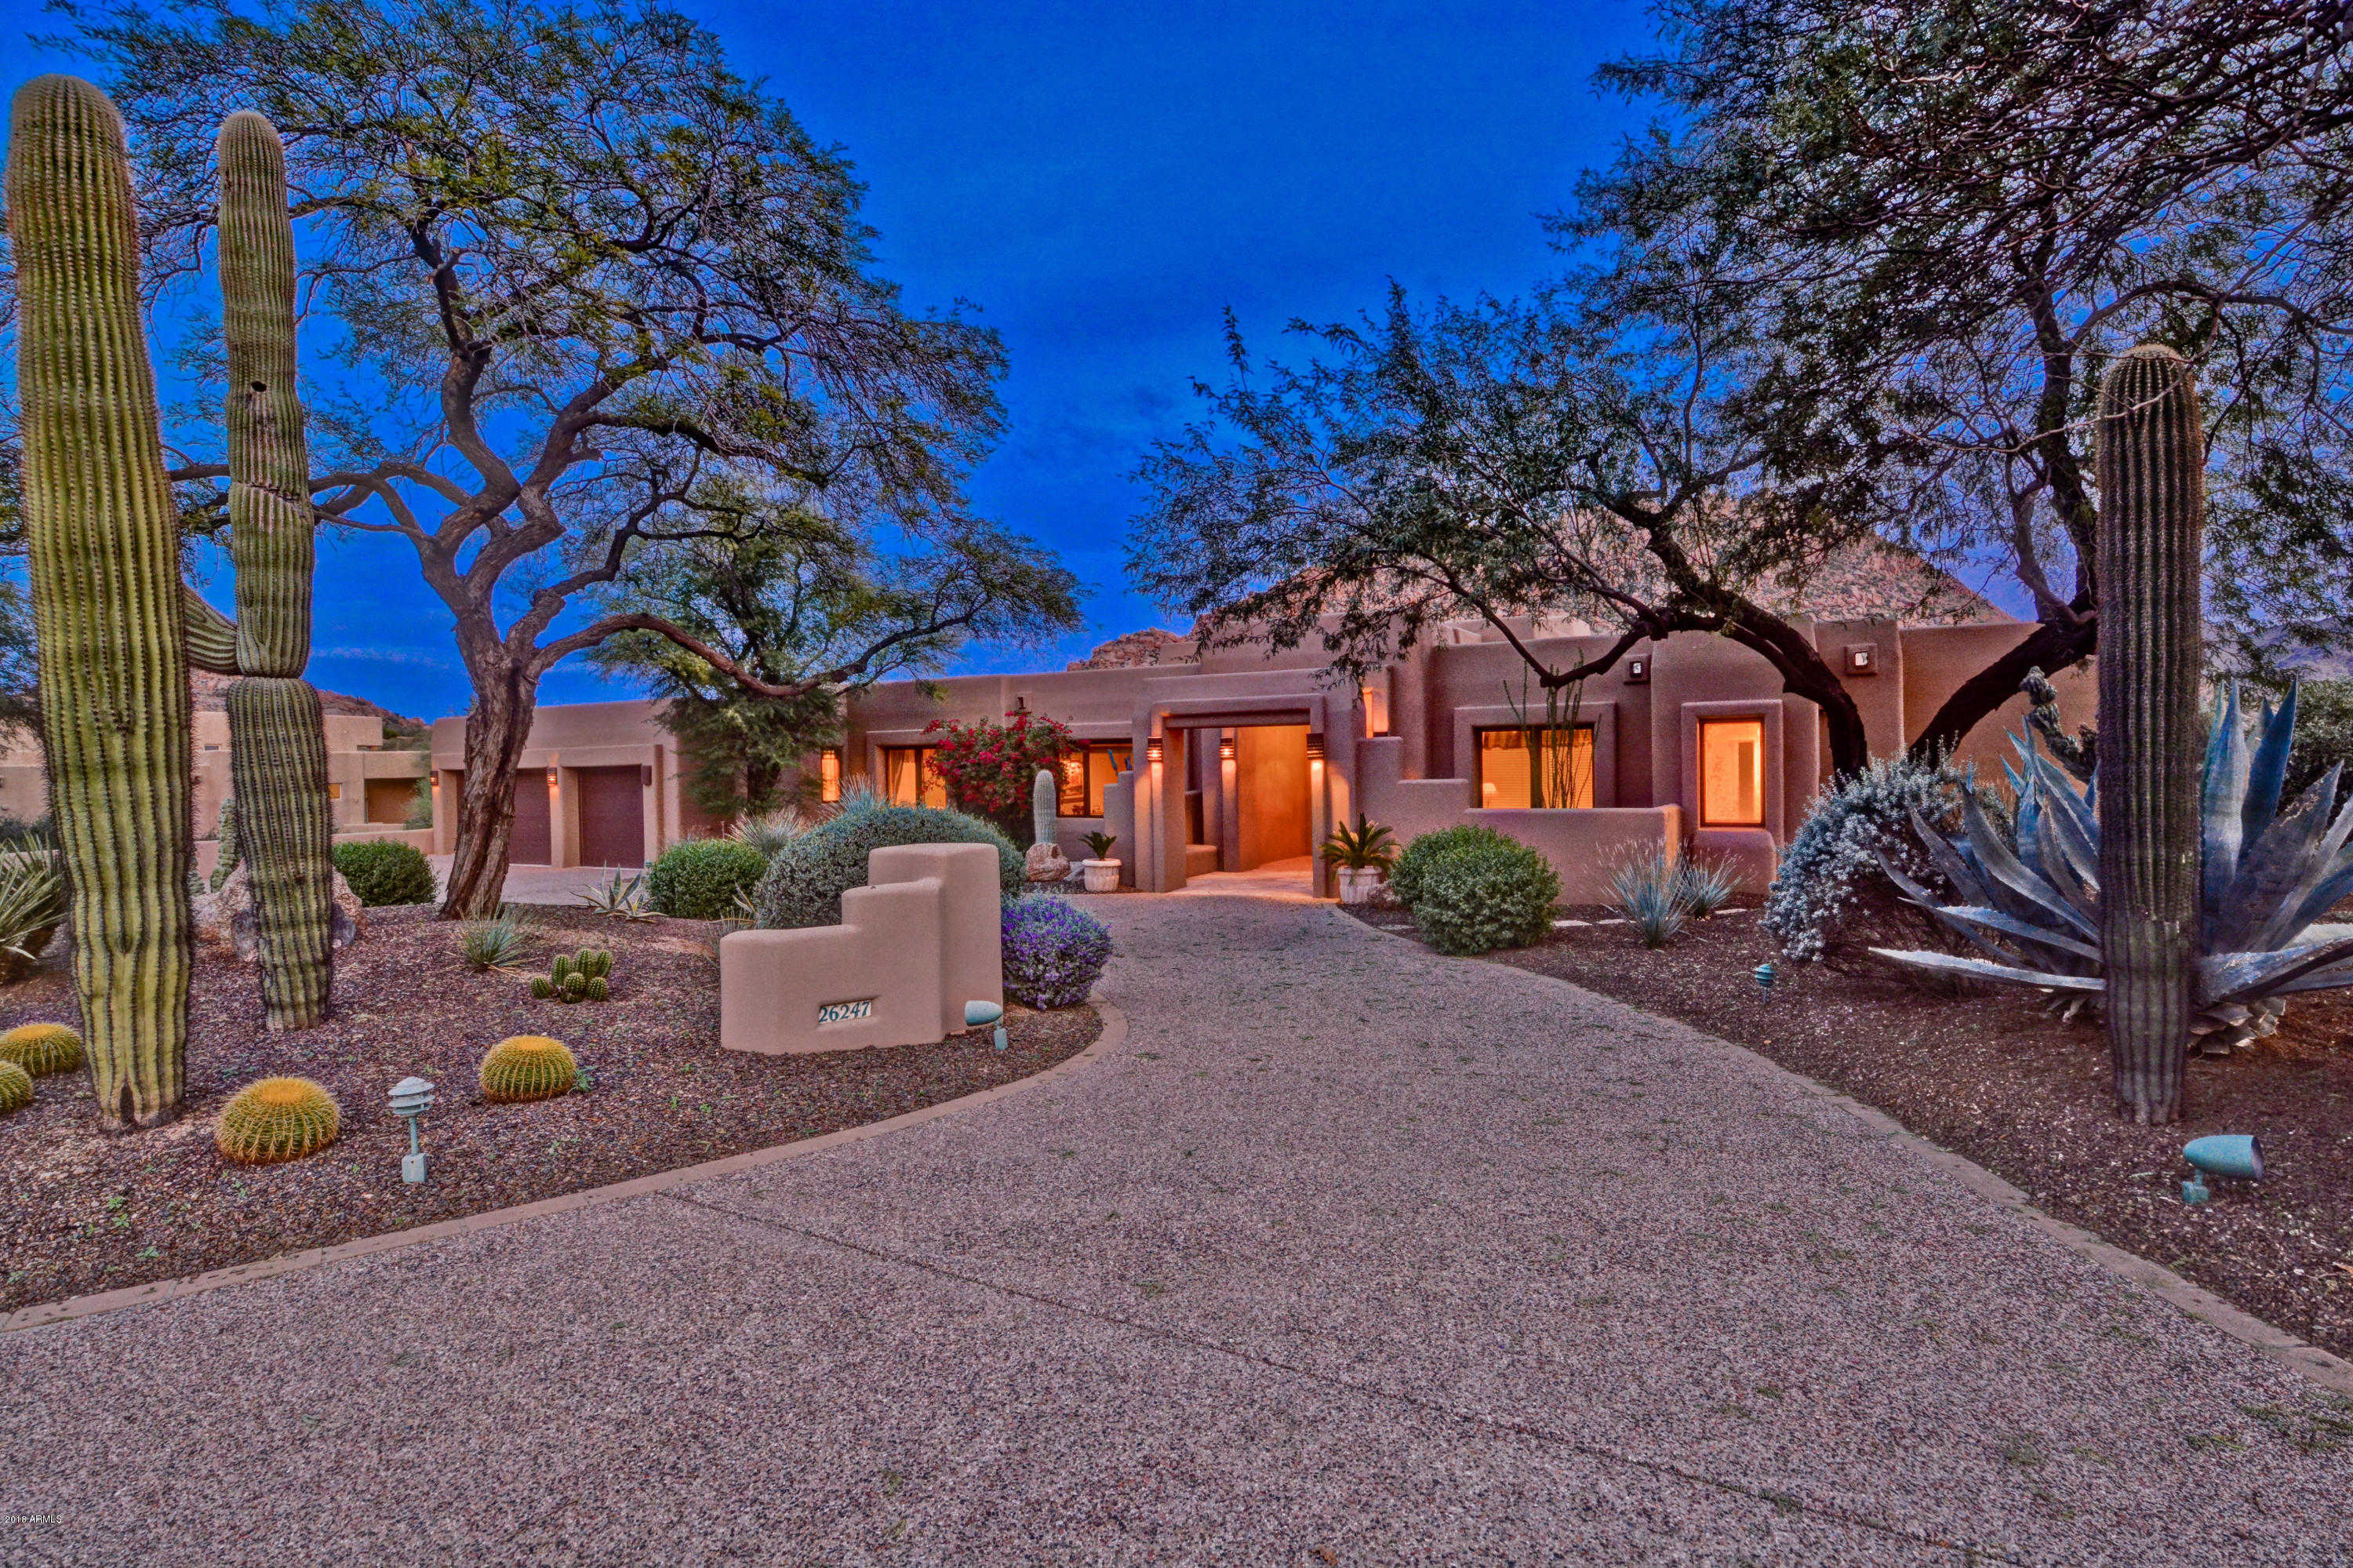 $1,070,000 - 3Br/5Ba - Home for Sale in Troon Fairways Lot 1-107 Tr A-d, Scottsdale